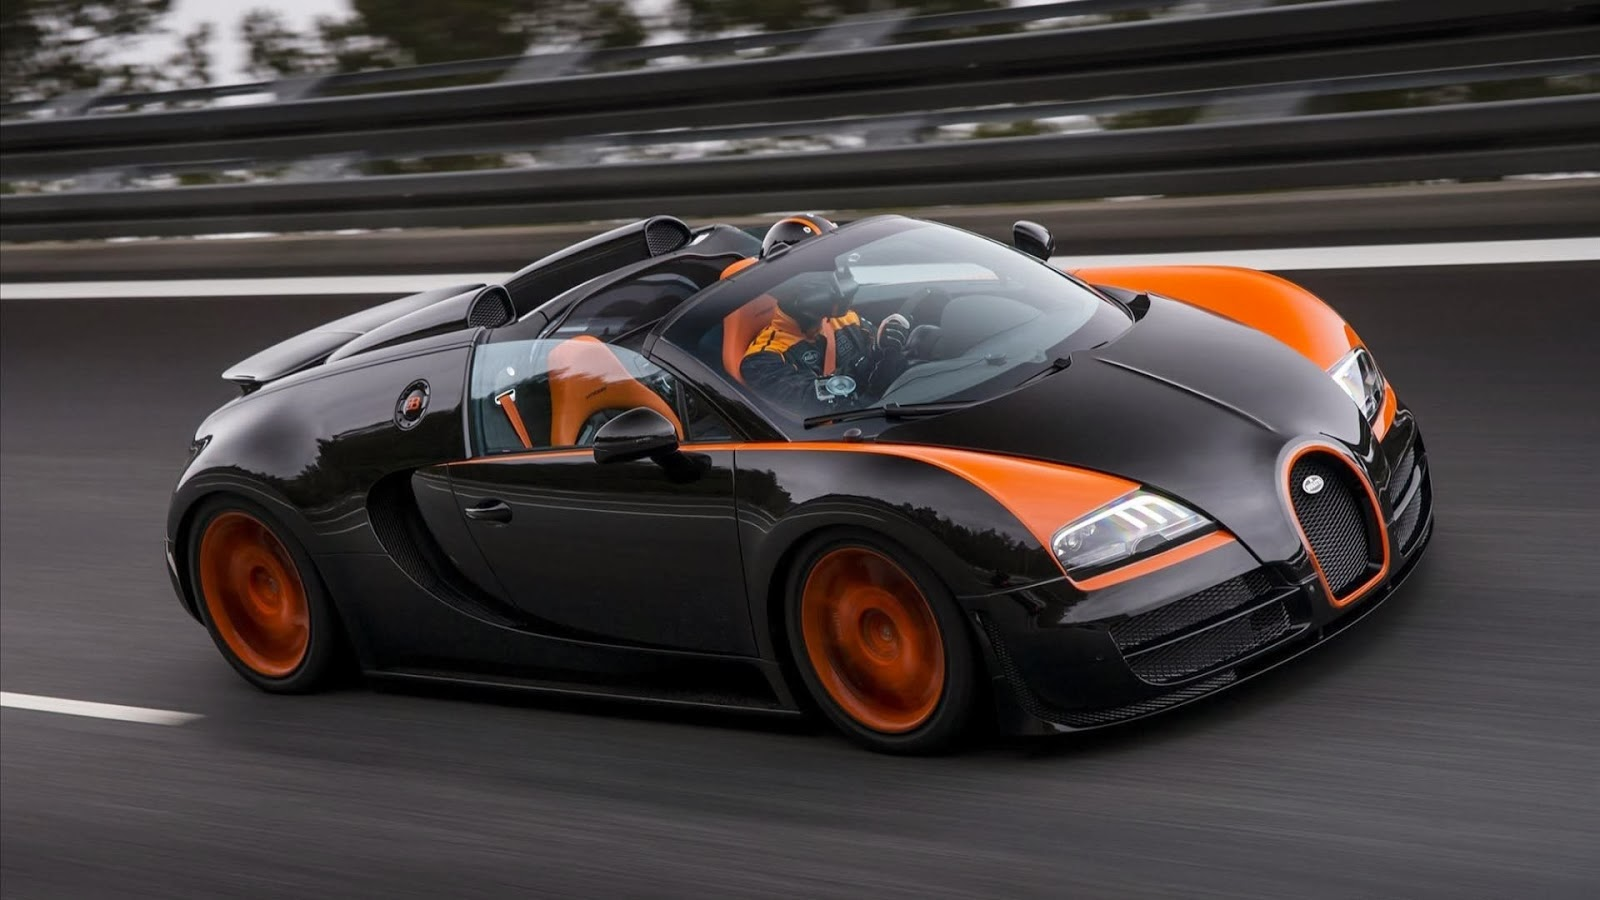 cars hd wallpapers download bugatti veyron sports cars hd wallpapers 1600x900